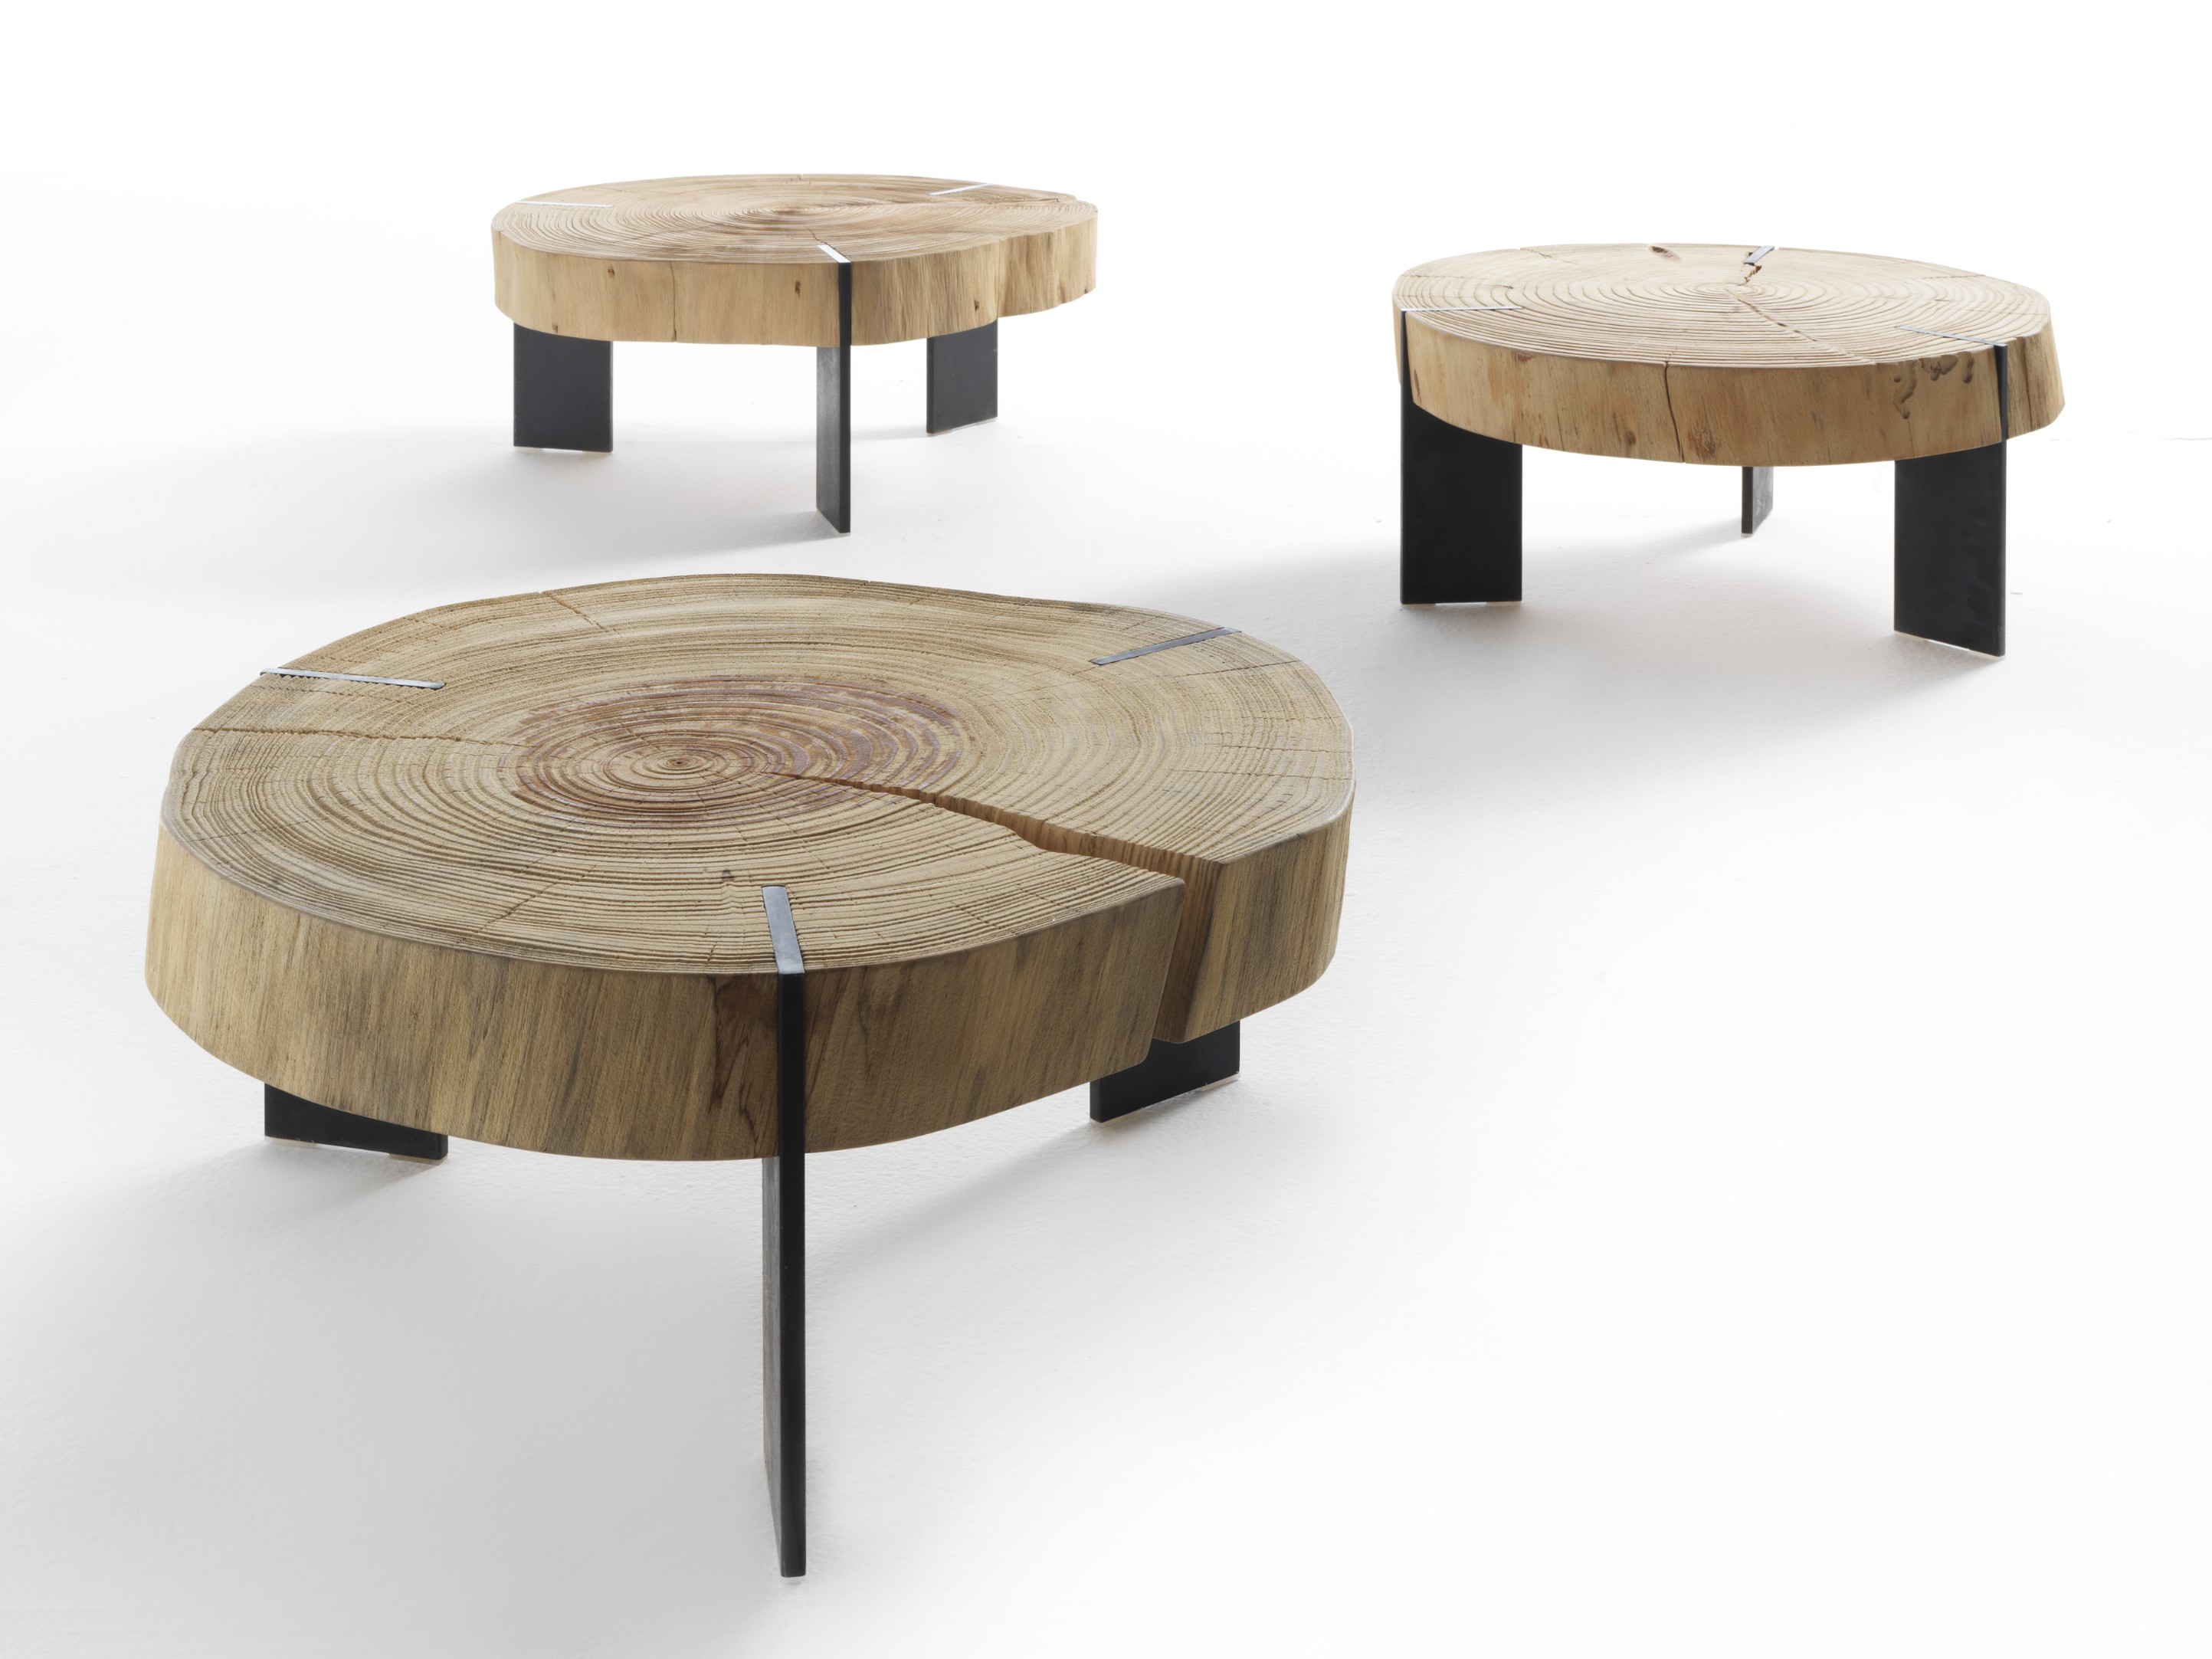 Toc Coffee Table - This exquisite coffee table is made of sections of a whole sandblasted cedar wood log resting on waxed iron legs. Here, nature is the real protagonist in all its majesty. The top of this coffee table can vary in size, as it is made with tree trunk sections. | Matter of Stuff